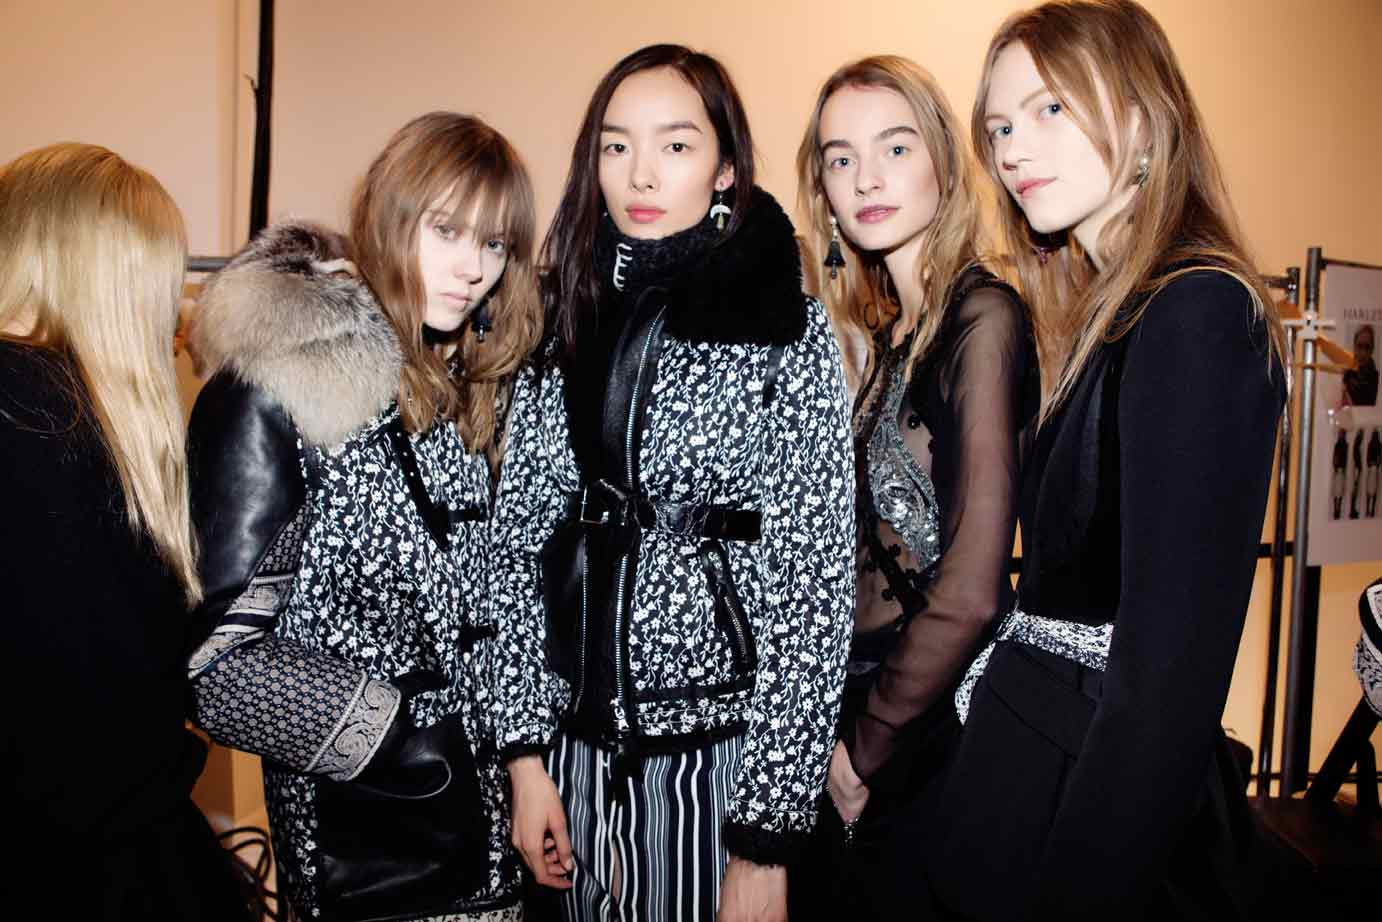 Backstage at Joseph Altuzarra's autumn/winter 2016 show